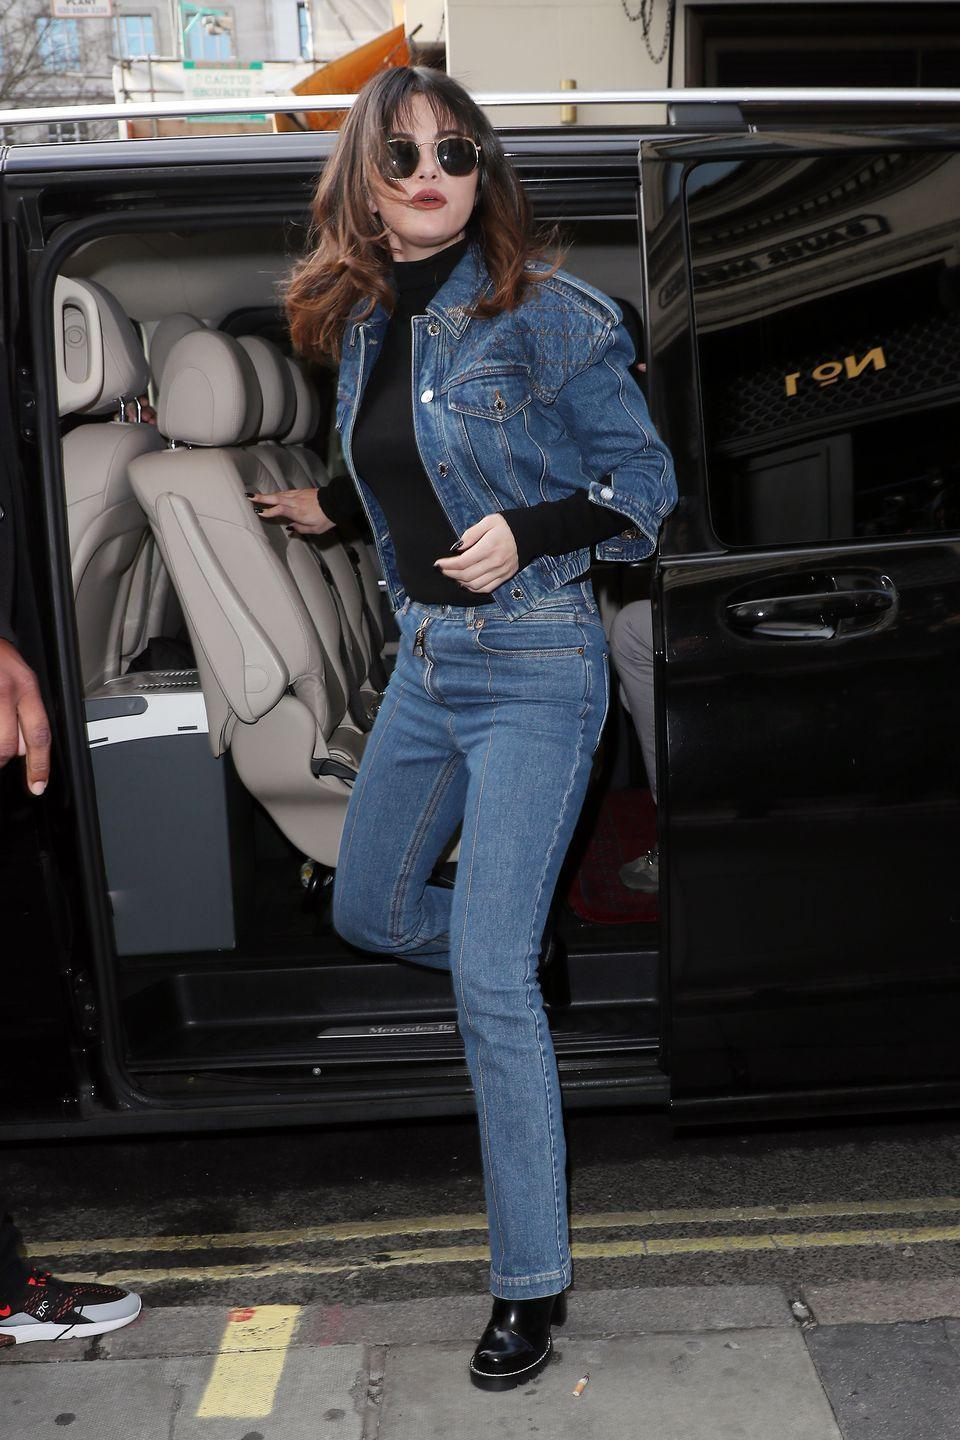 "<p>Heading to the KISS FM UK Breakfast Radio Studios in London, where she <a href=""https://www.elle.com/culture/celebrities/a30194470/selena-gomez-blunt-bangs-london-photo/"" rel=""nofollow noopener"" target=""_blank"" data-ylk=""slk:debuted"" class=""link rapid-noclick-resp"">debuted</a> a new set of bangs and Louis Vuitton ensemble.</p>"